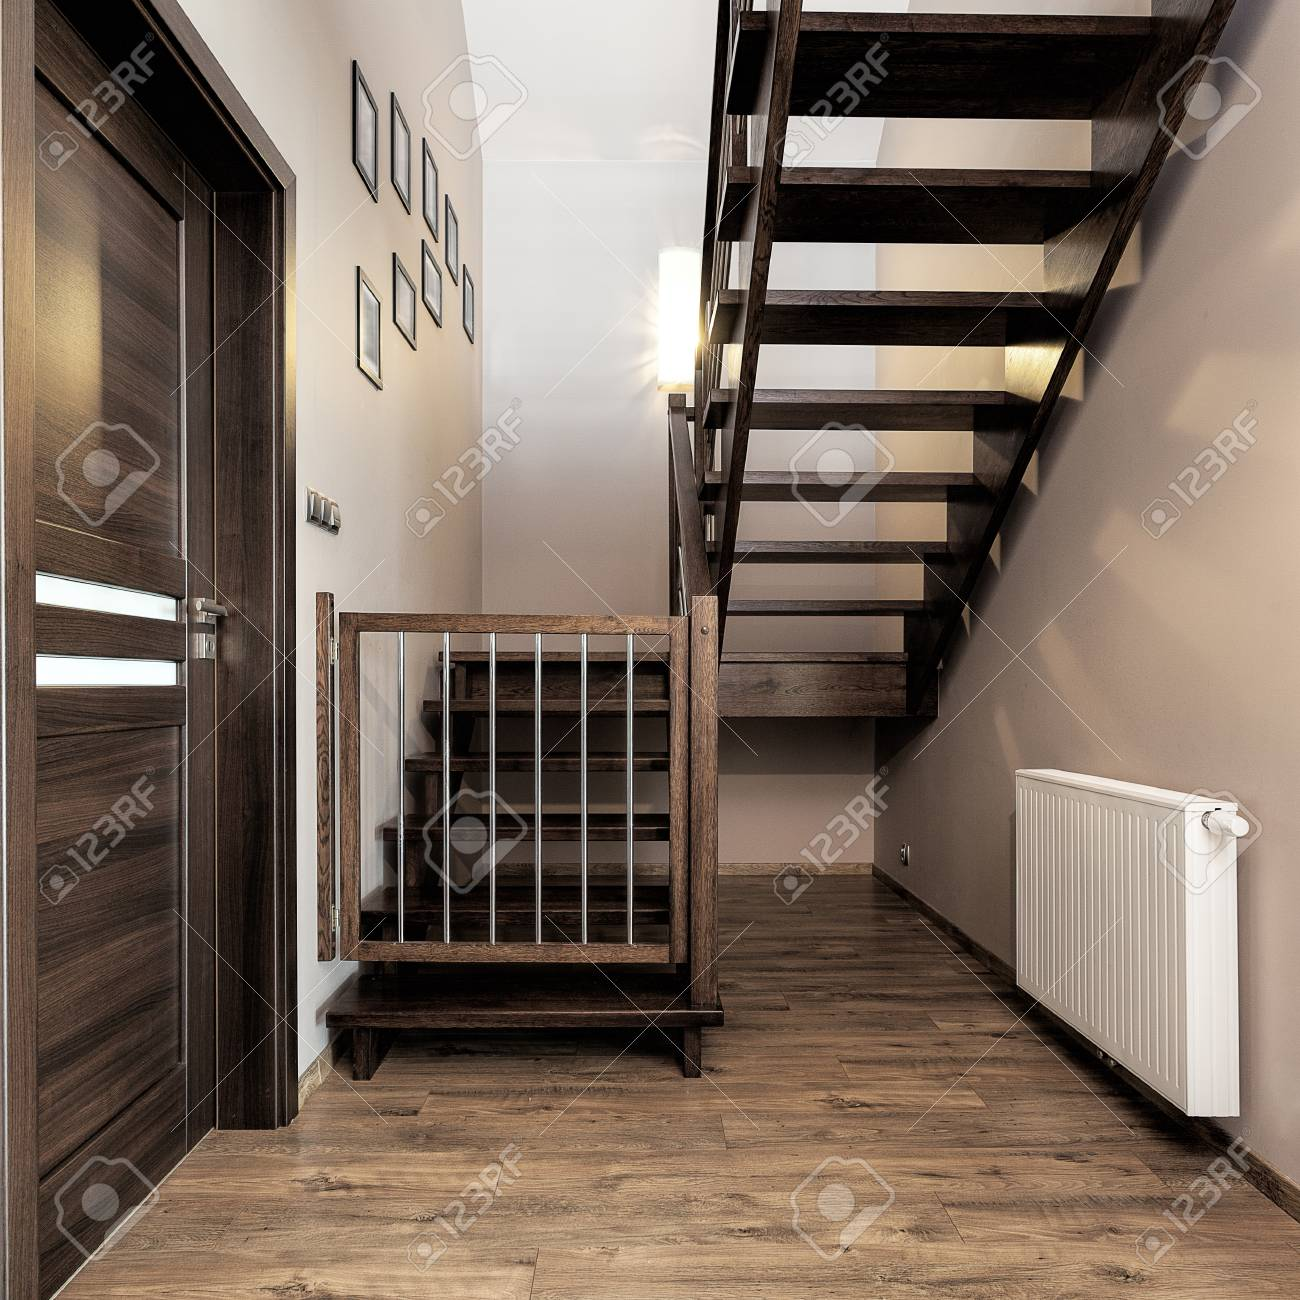 Urban Apartment Wooden Stairs With Baby Safety Gate Stock Photo